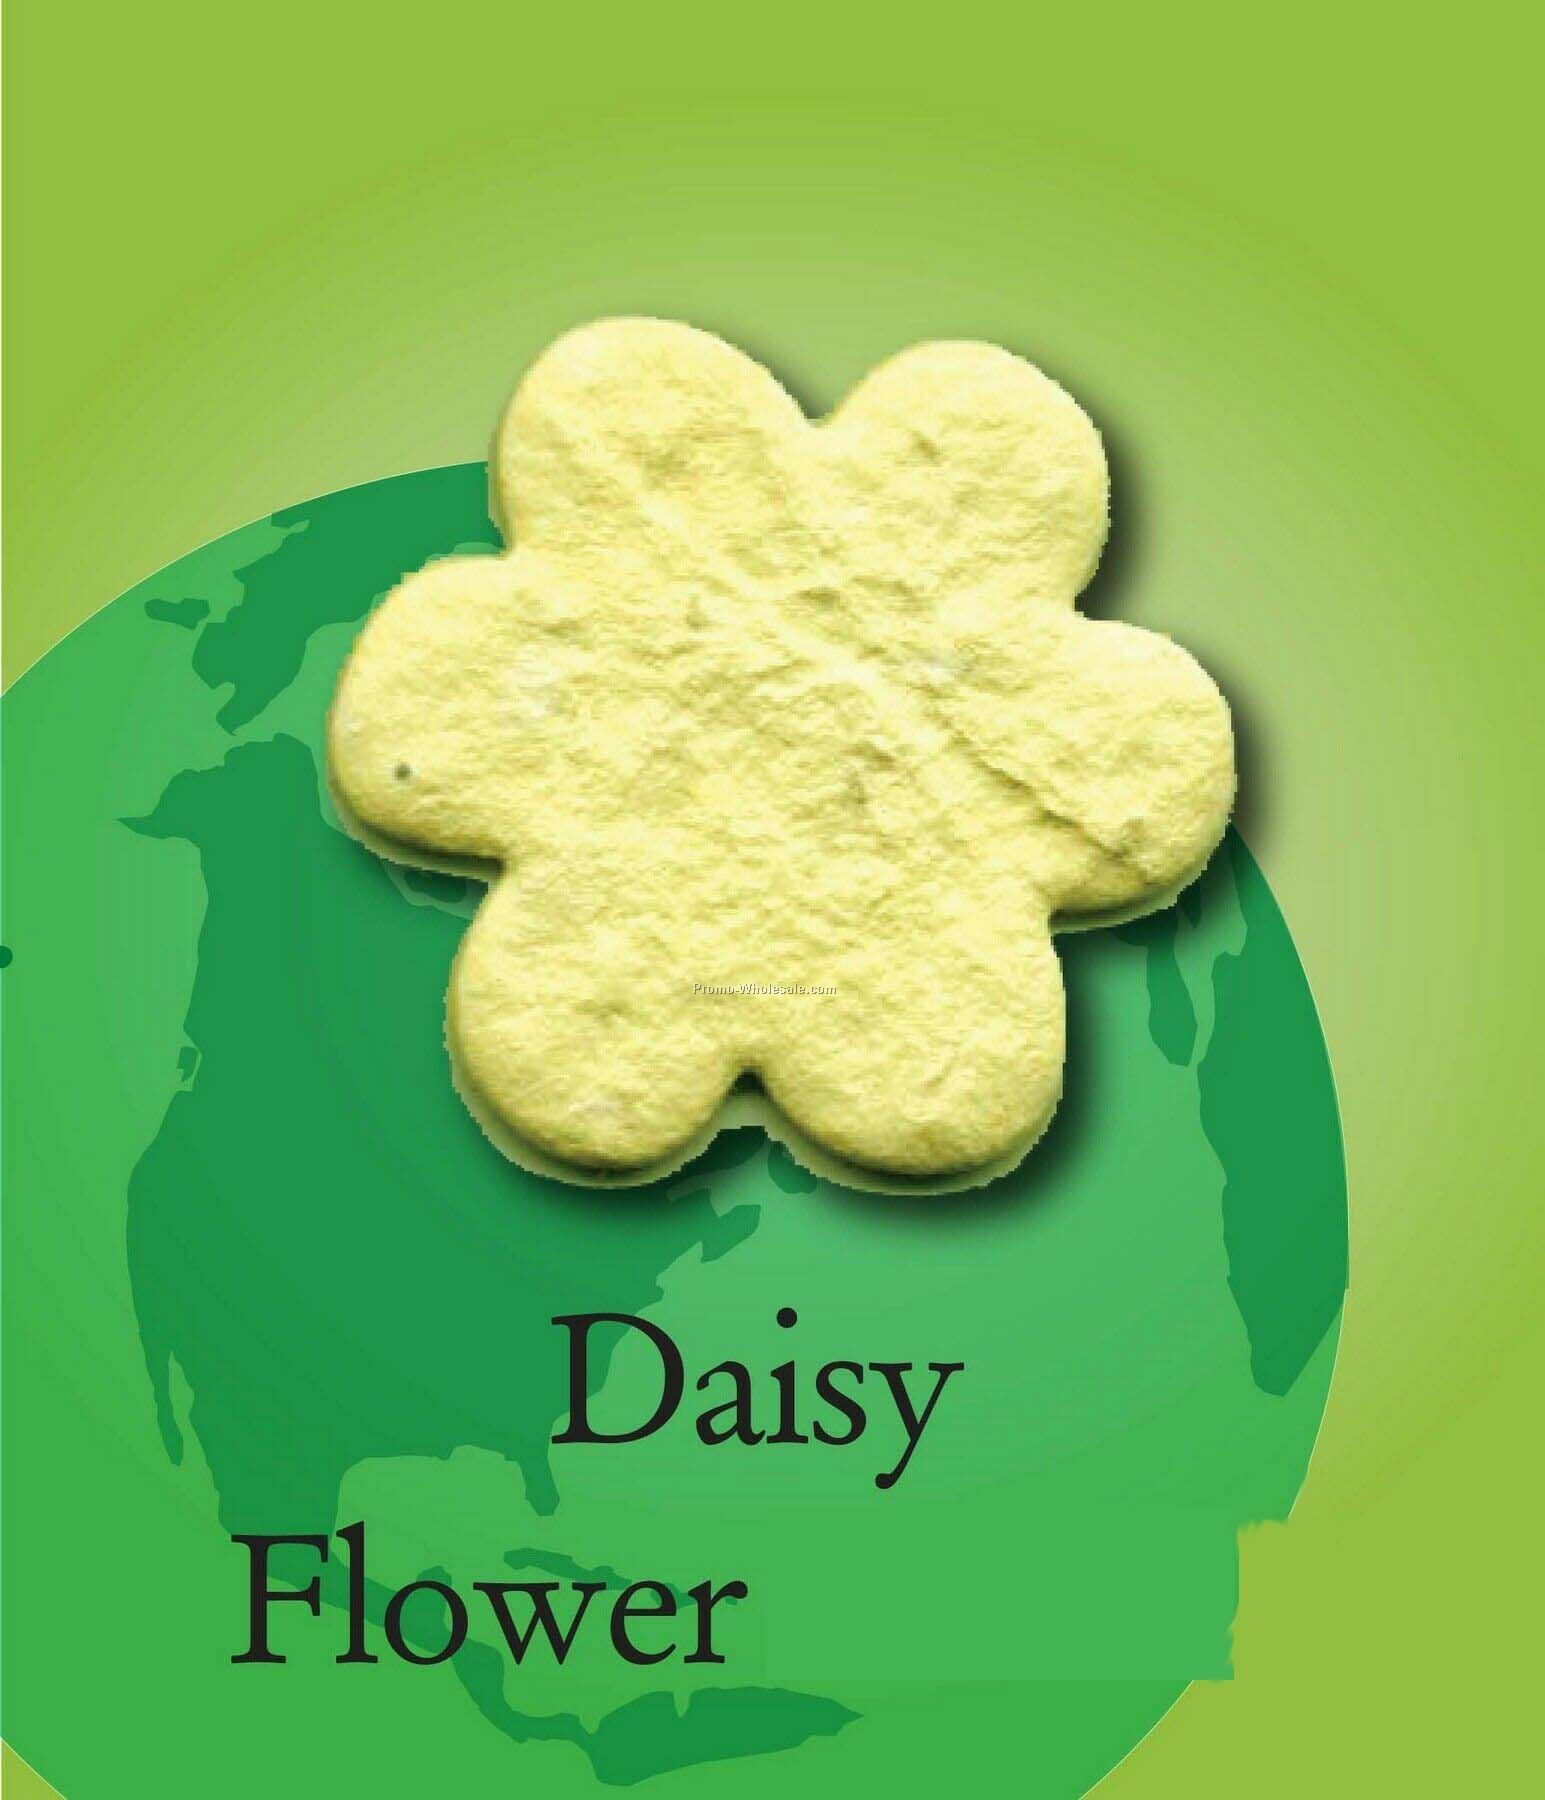 Daisy Flower Handmade Seed Plantable Mini